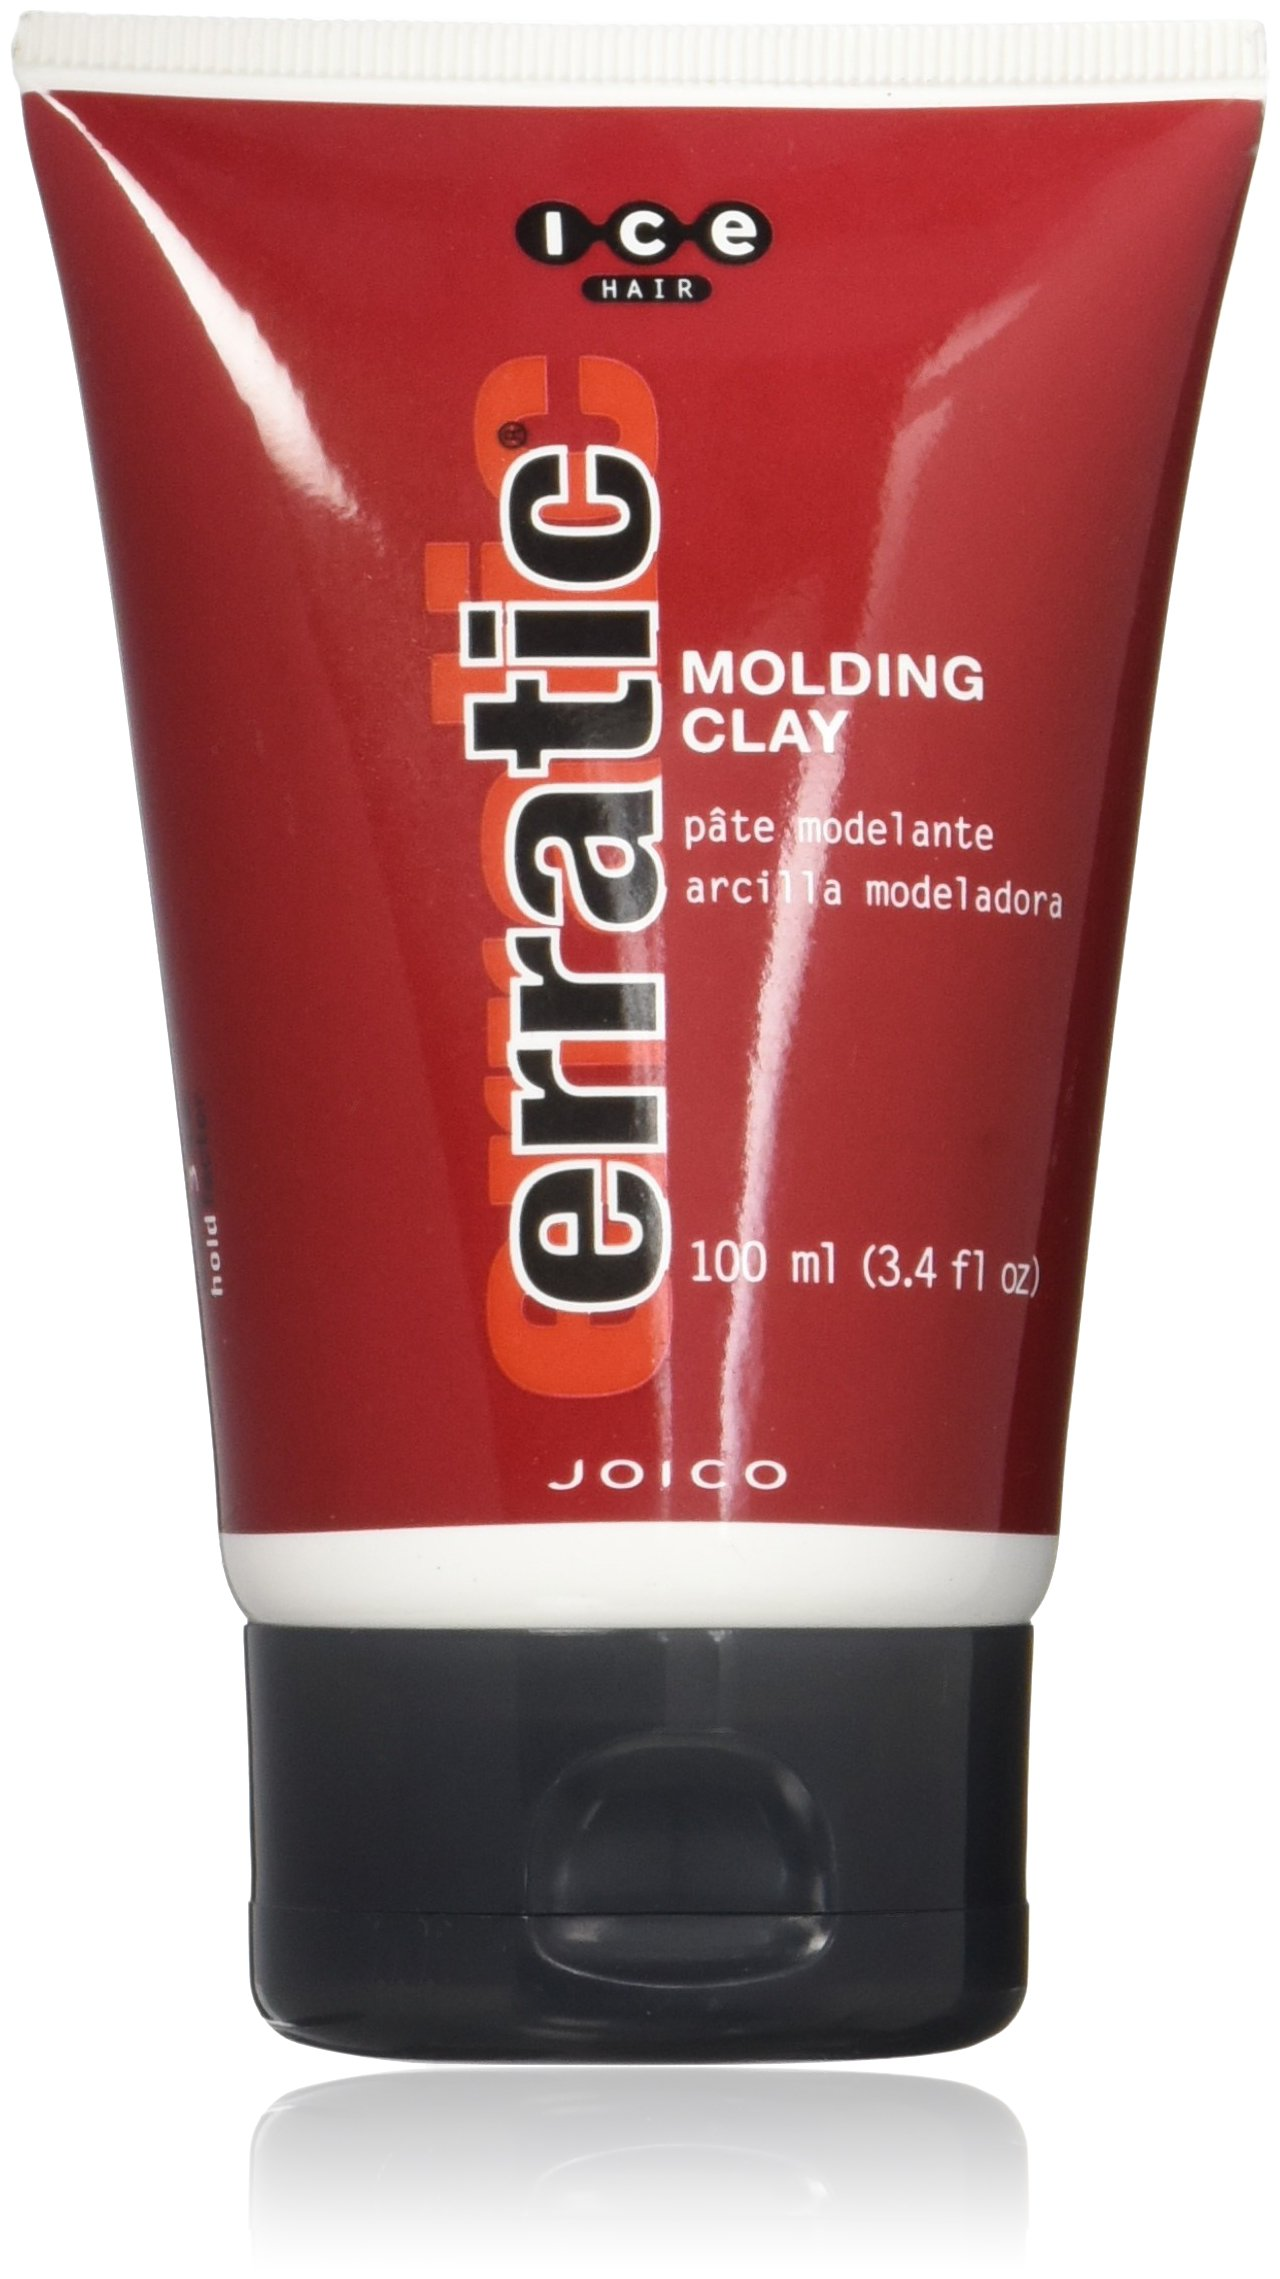 Joico Ice Erratic Molding Clay 3.4oz, Pack of 2 by Joico